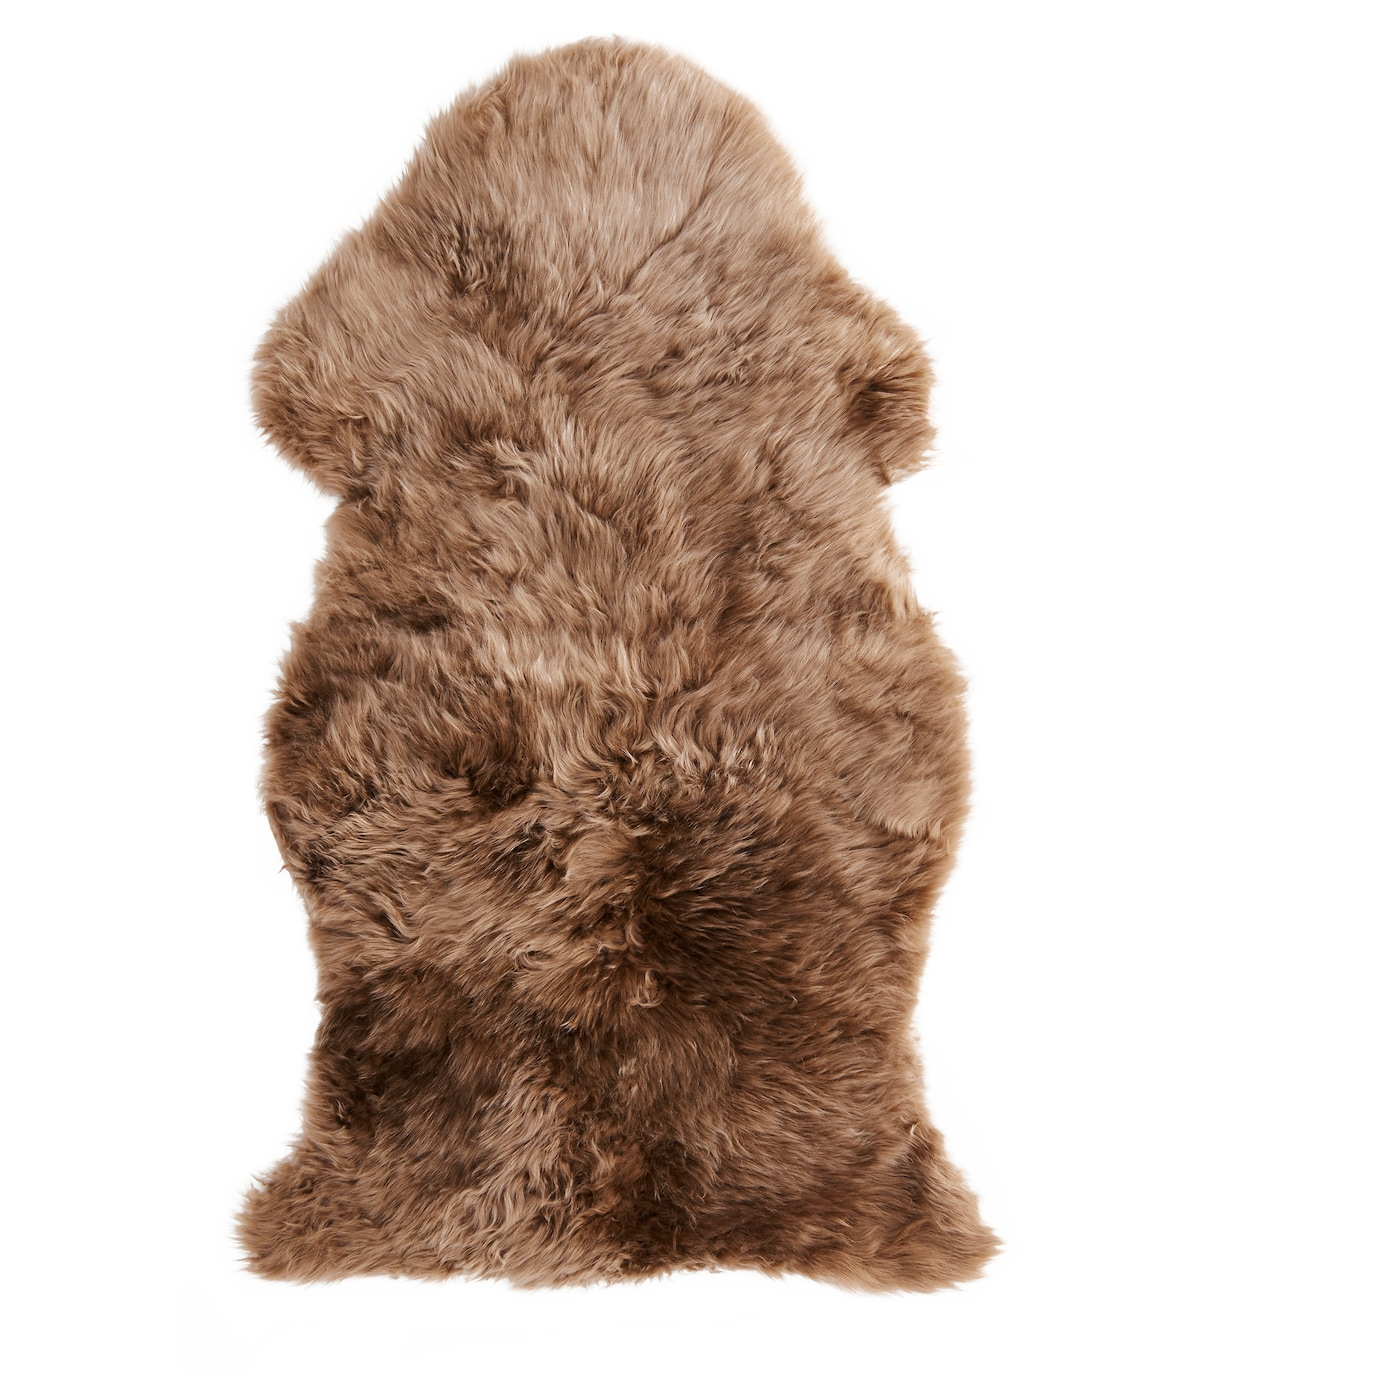 ikea skold sheepskin wool is and hardwearing